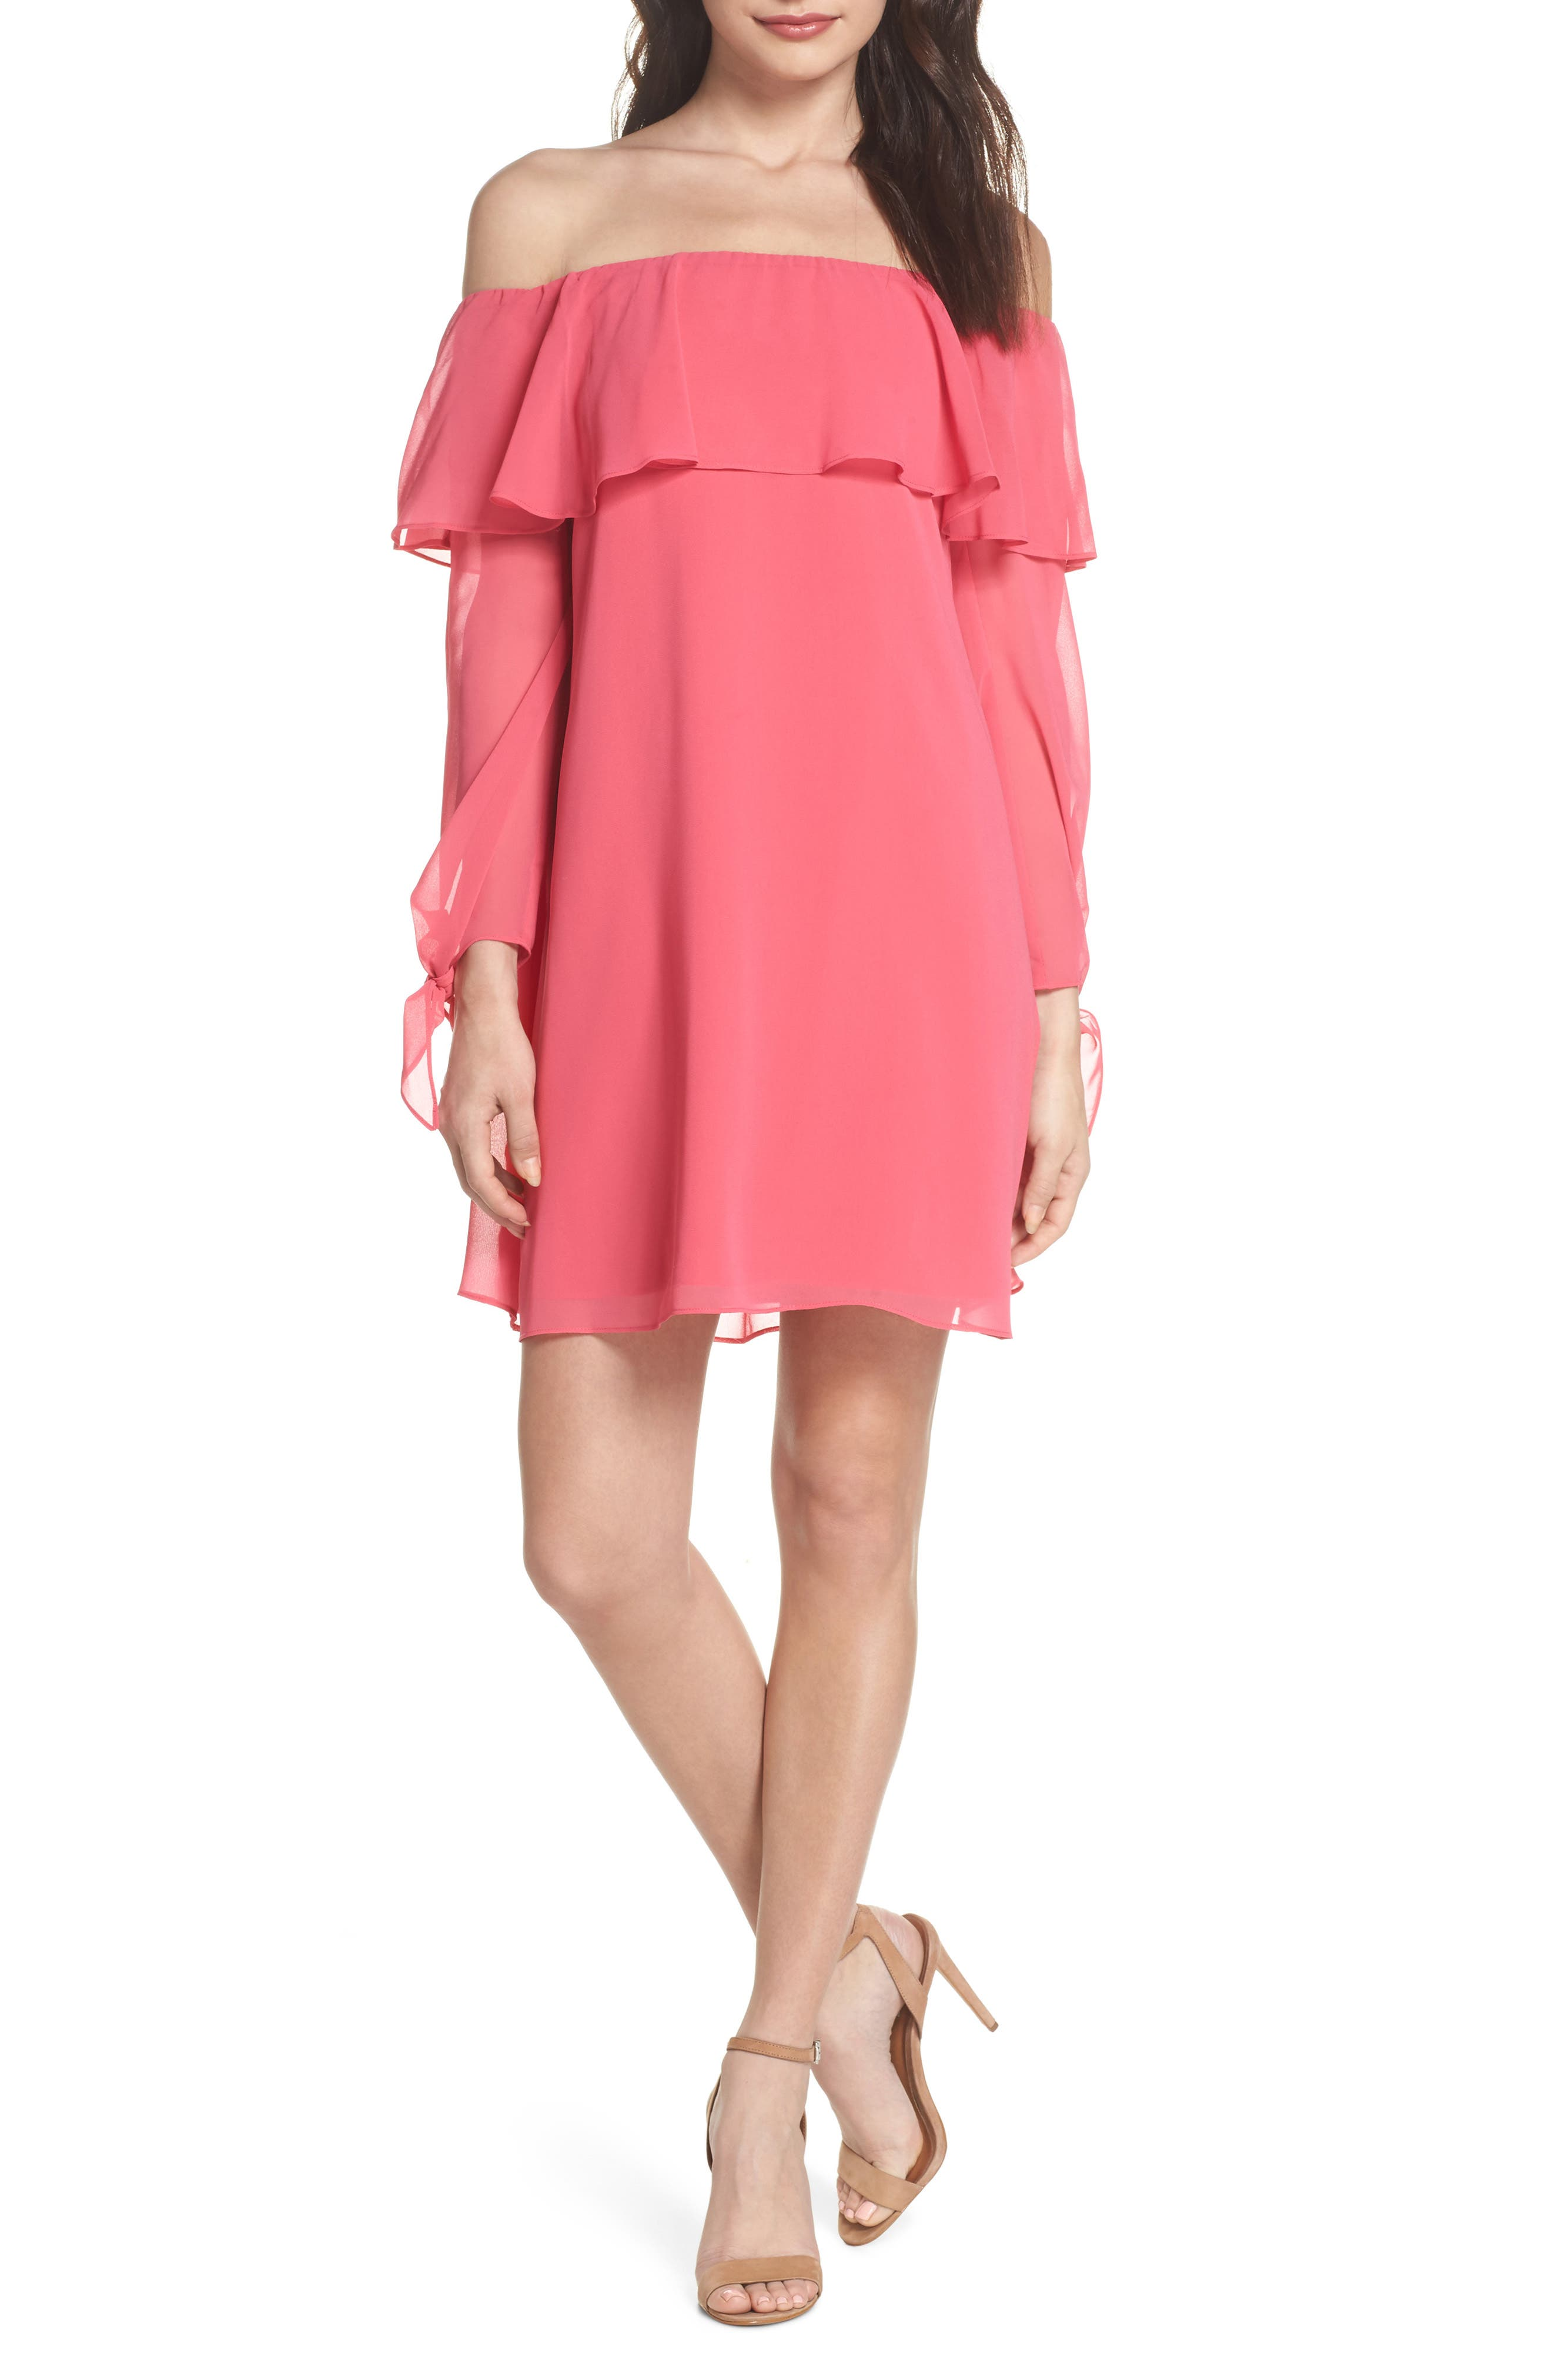 Off the Shoulder Tie-Cuff Shift Dress,                             Main thumbnail 1, color,                             Hot Pink